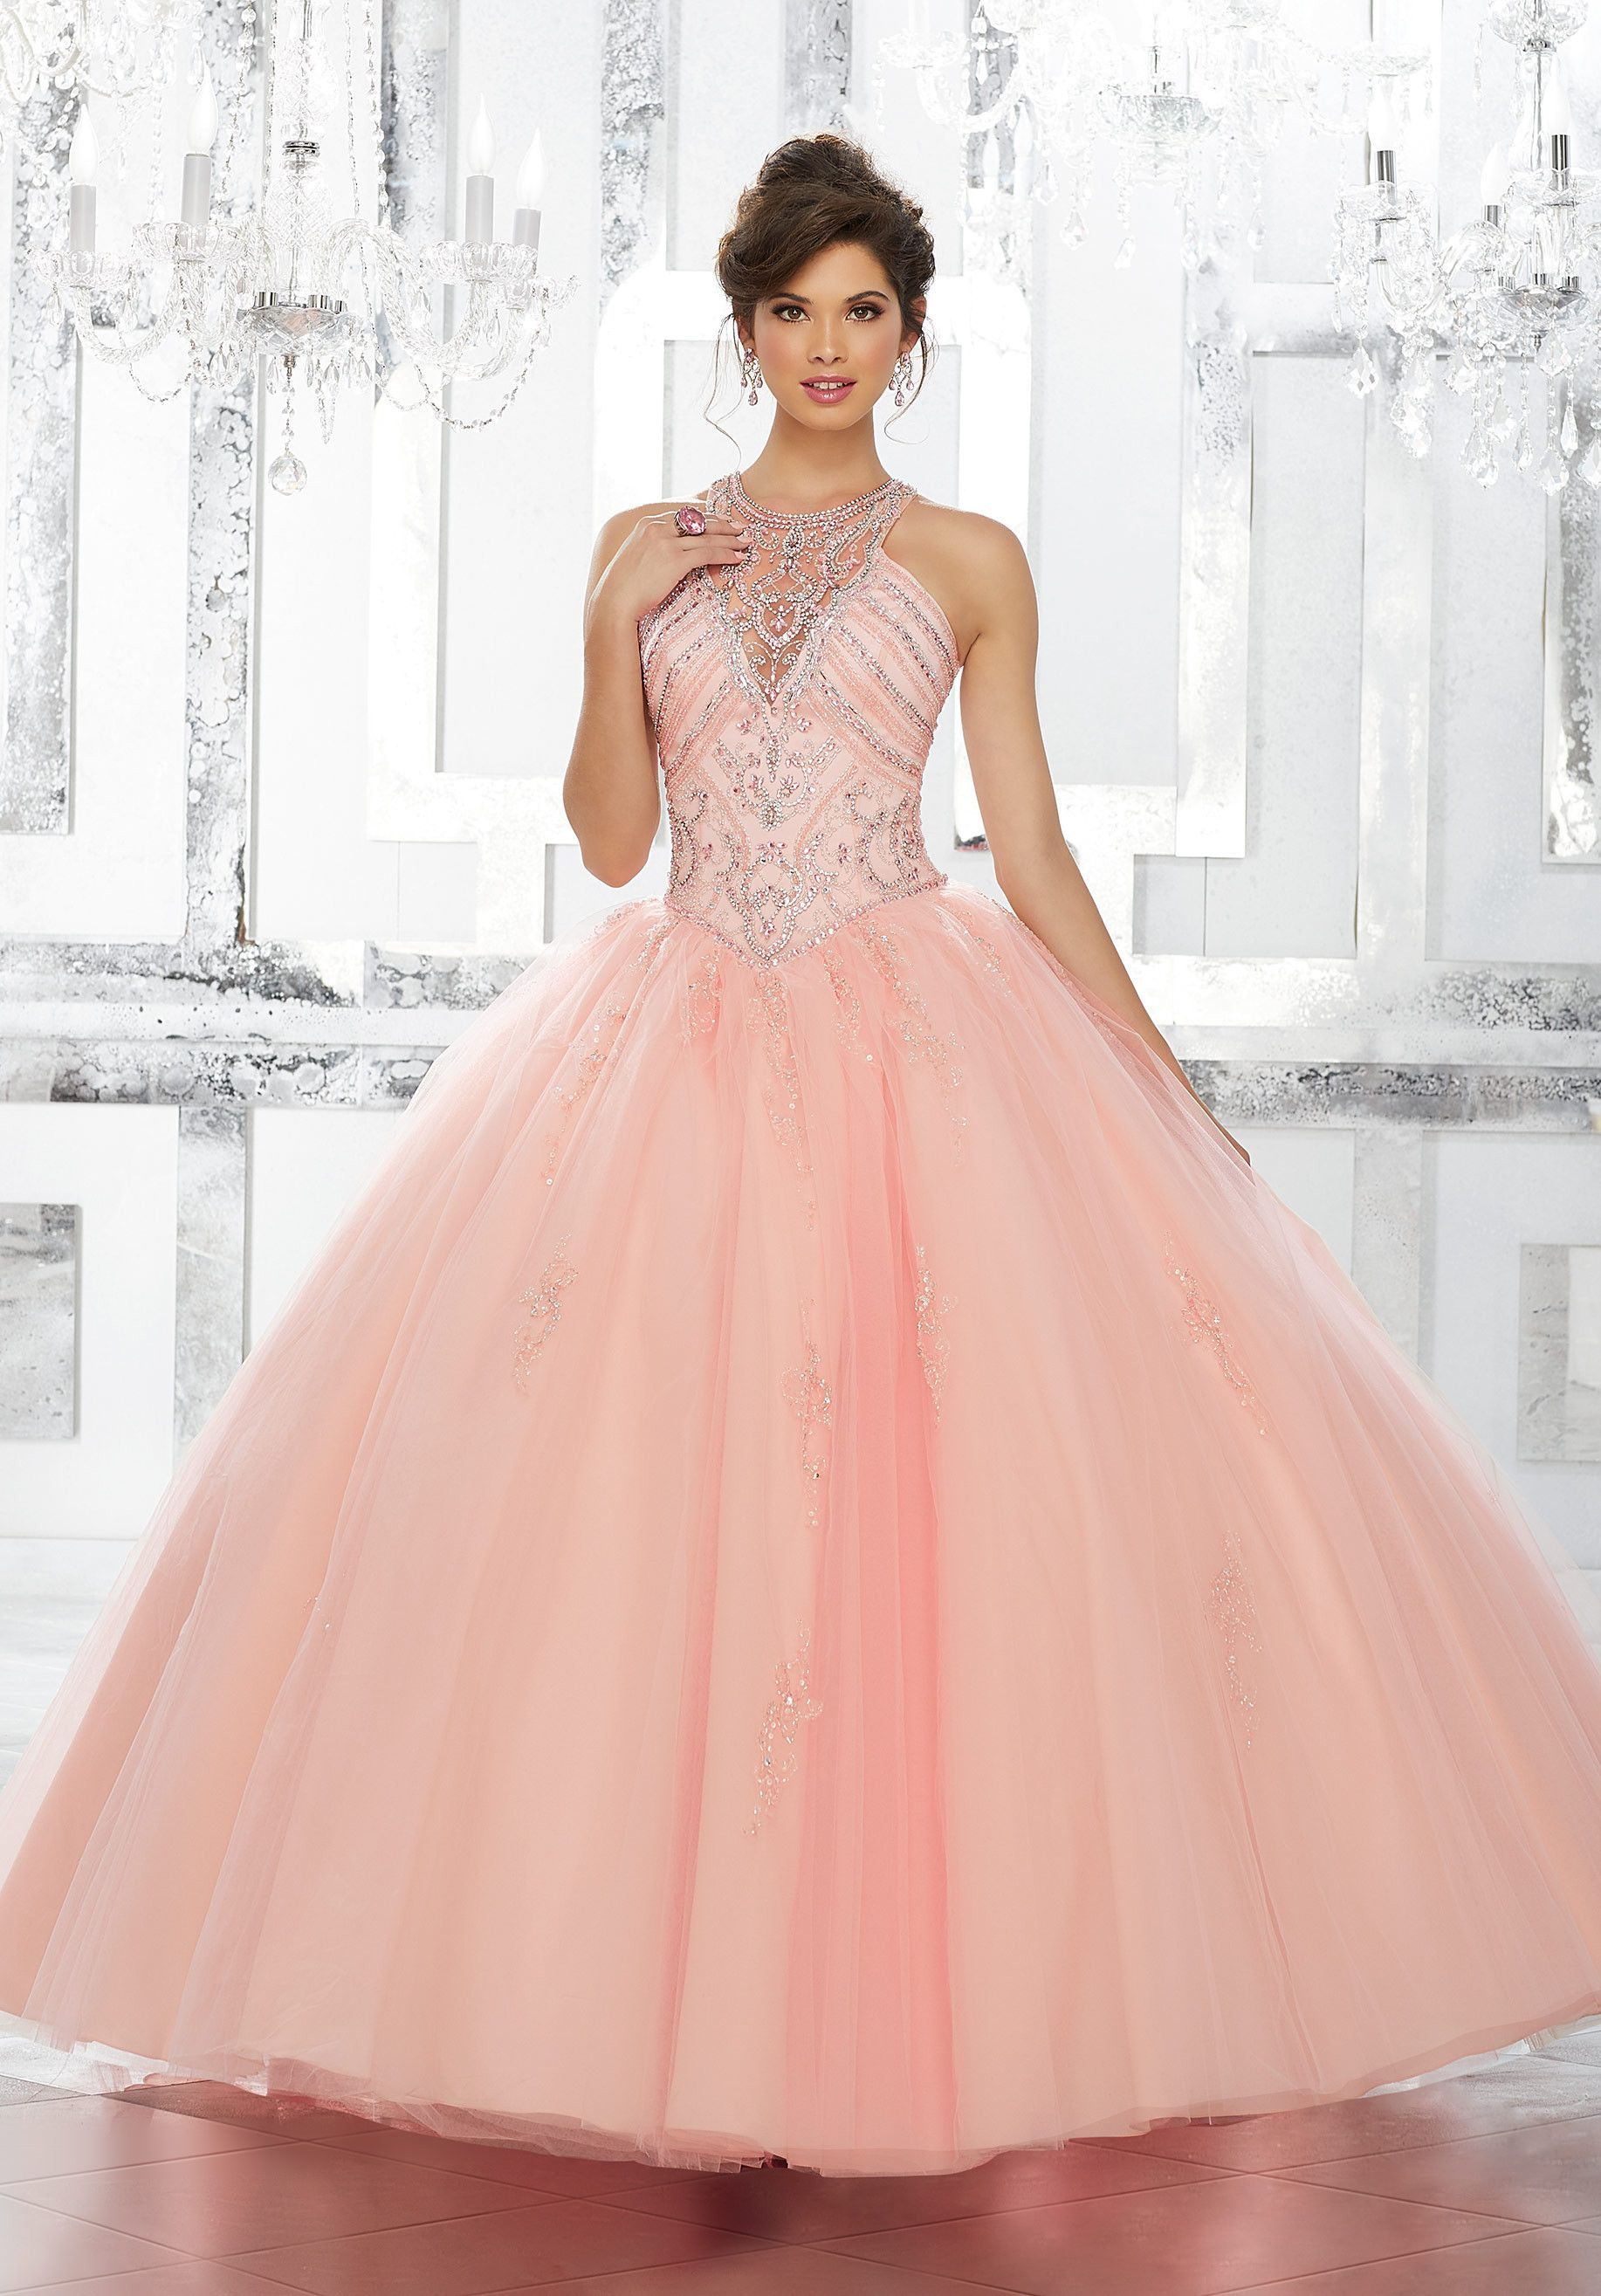 Illusion A-line Quinceanera Dress by Mori Lee Vizcaya 89145 ...